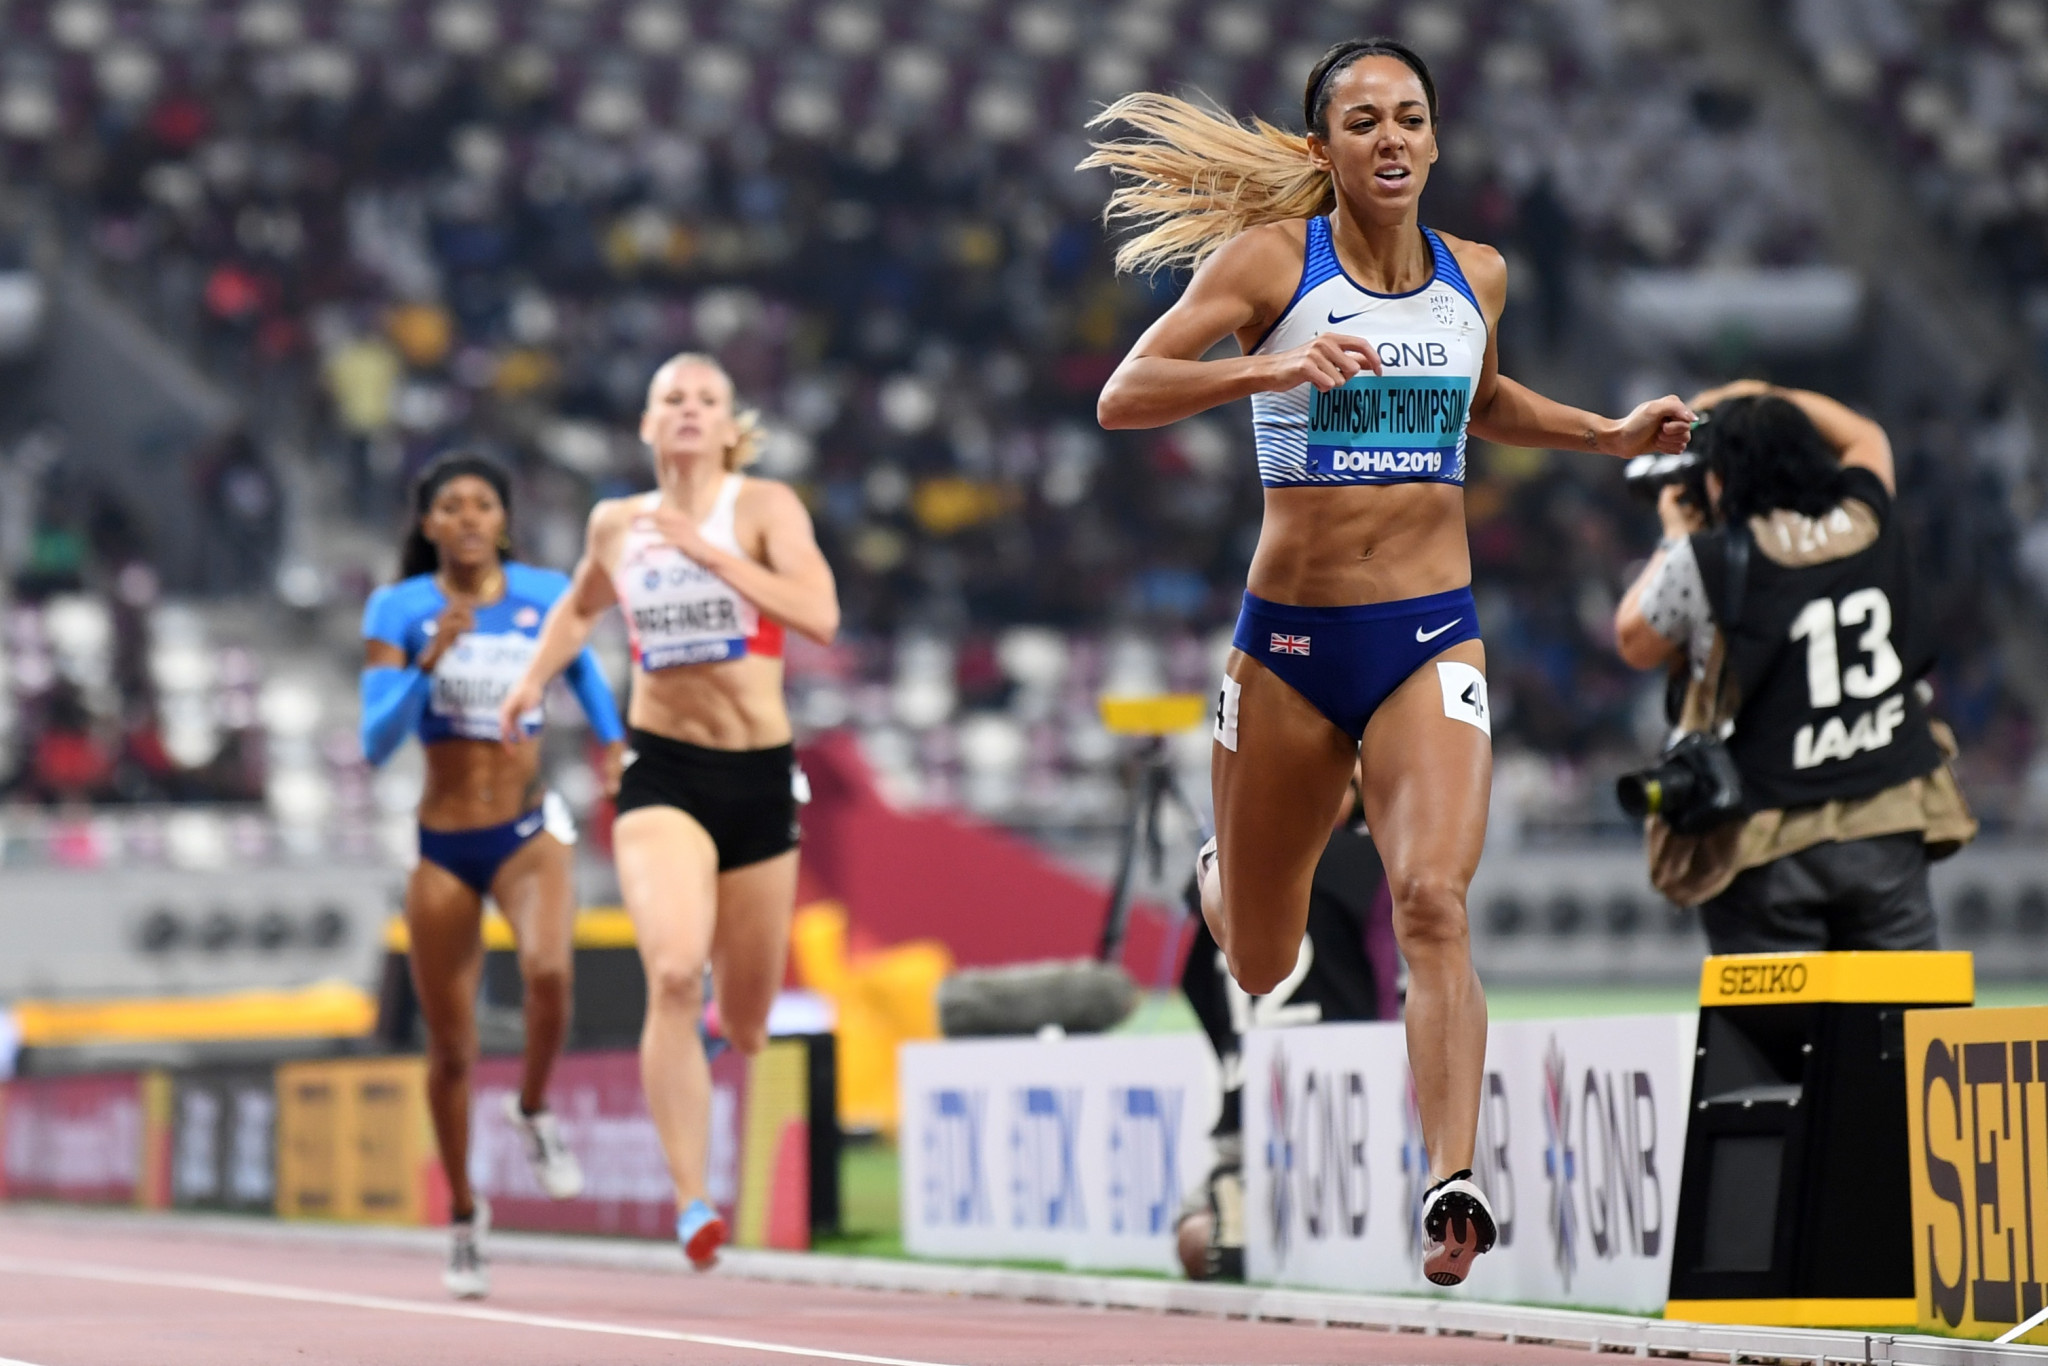 Britain's Katarina Johnson-Thompson crosses the line to win the heptathlon gold medal ©Getty Images